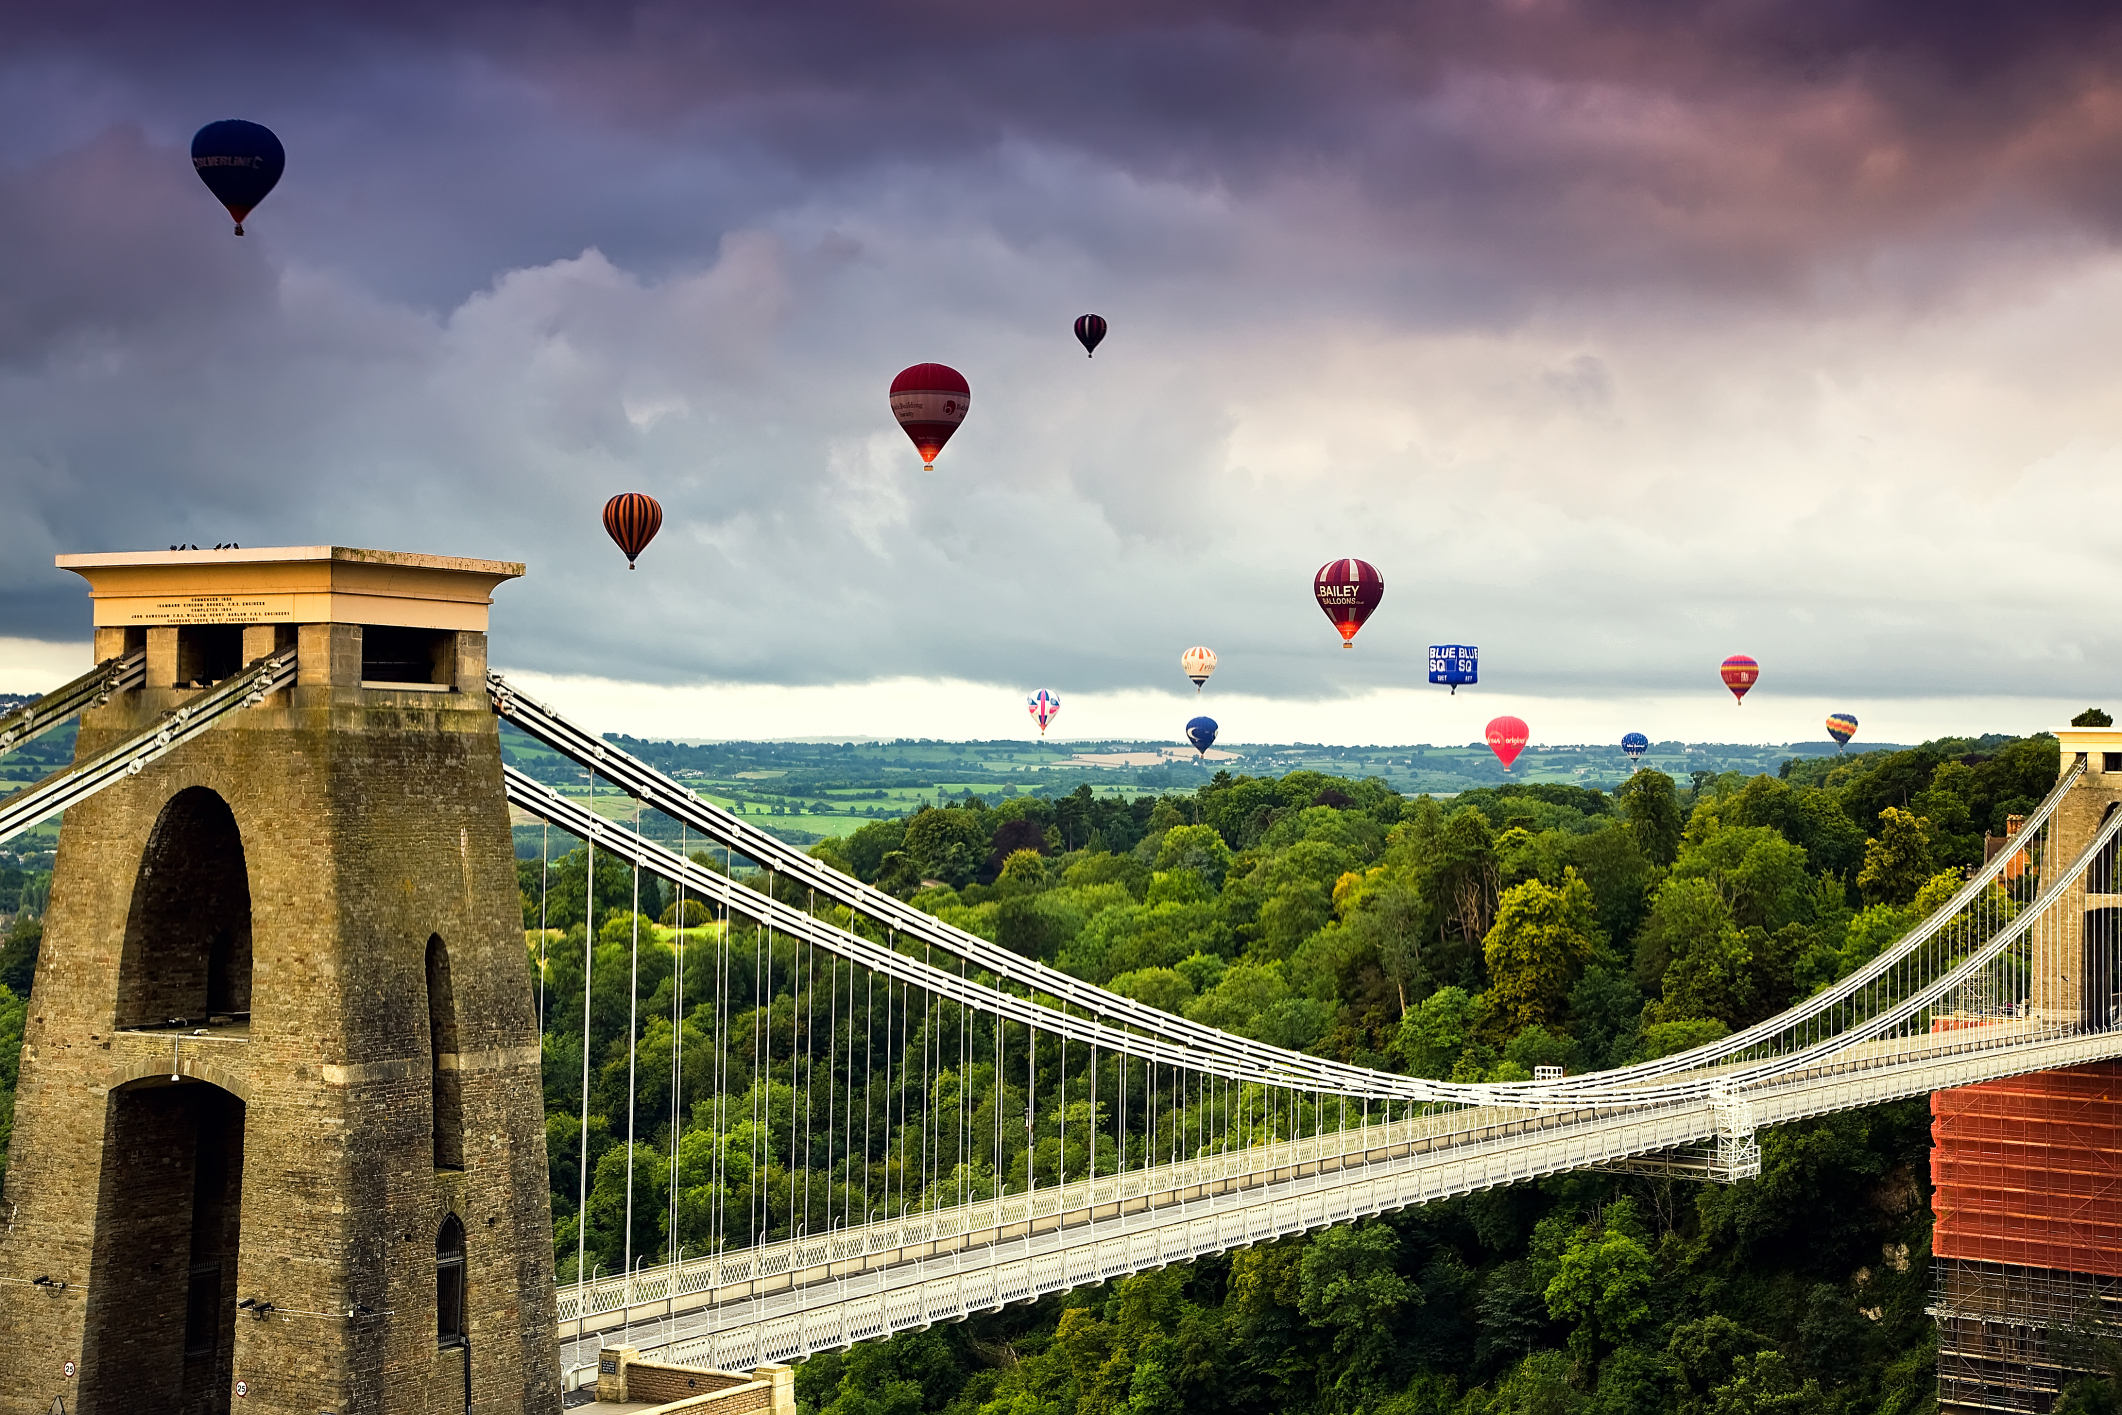 20 things to do in Bristol as recommended by a local